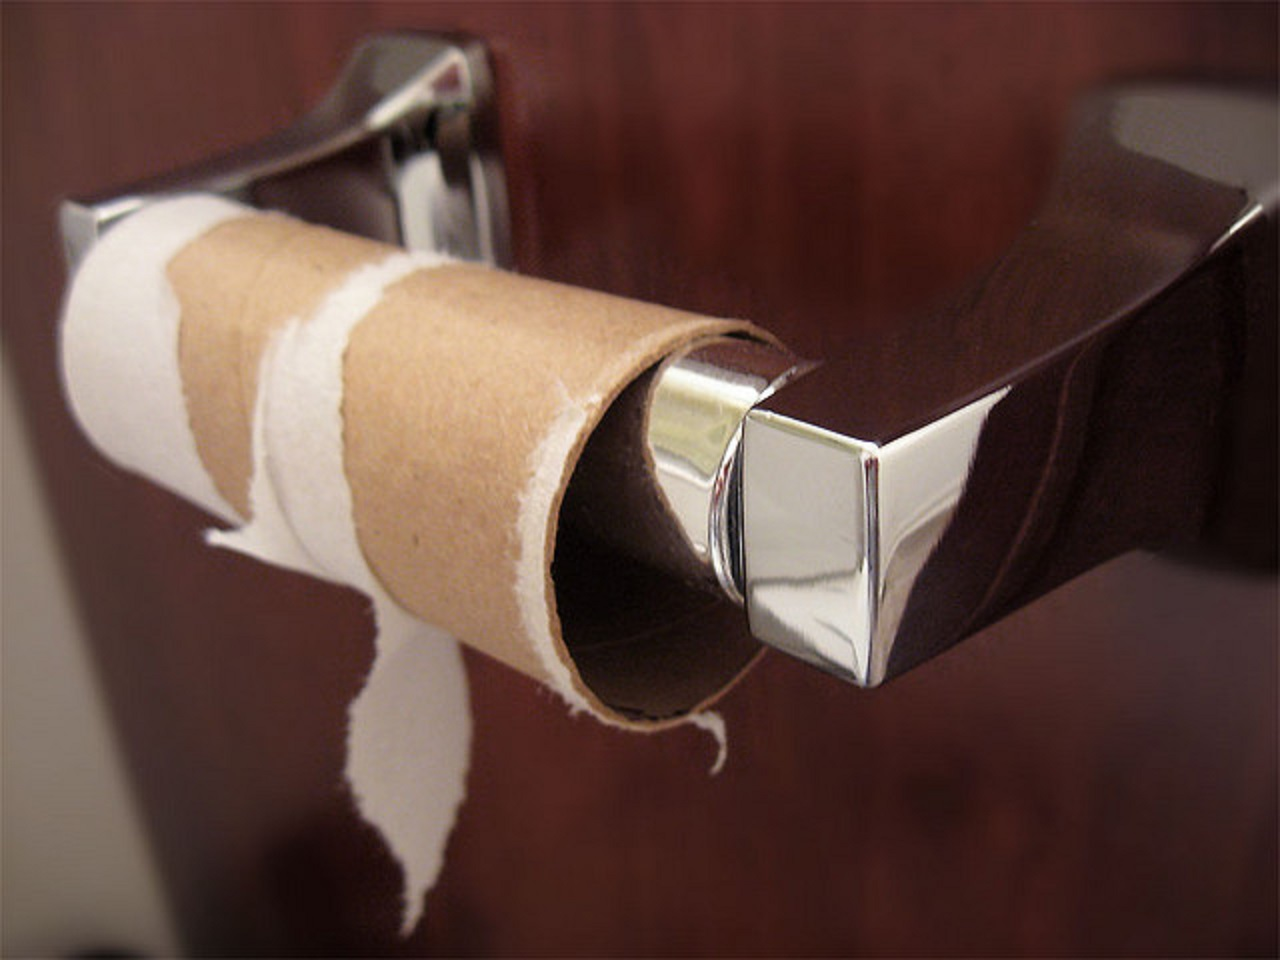 10 Unconventional Ways to Use Old Paper Towel and Toiler Paper Rolls Around the House